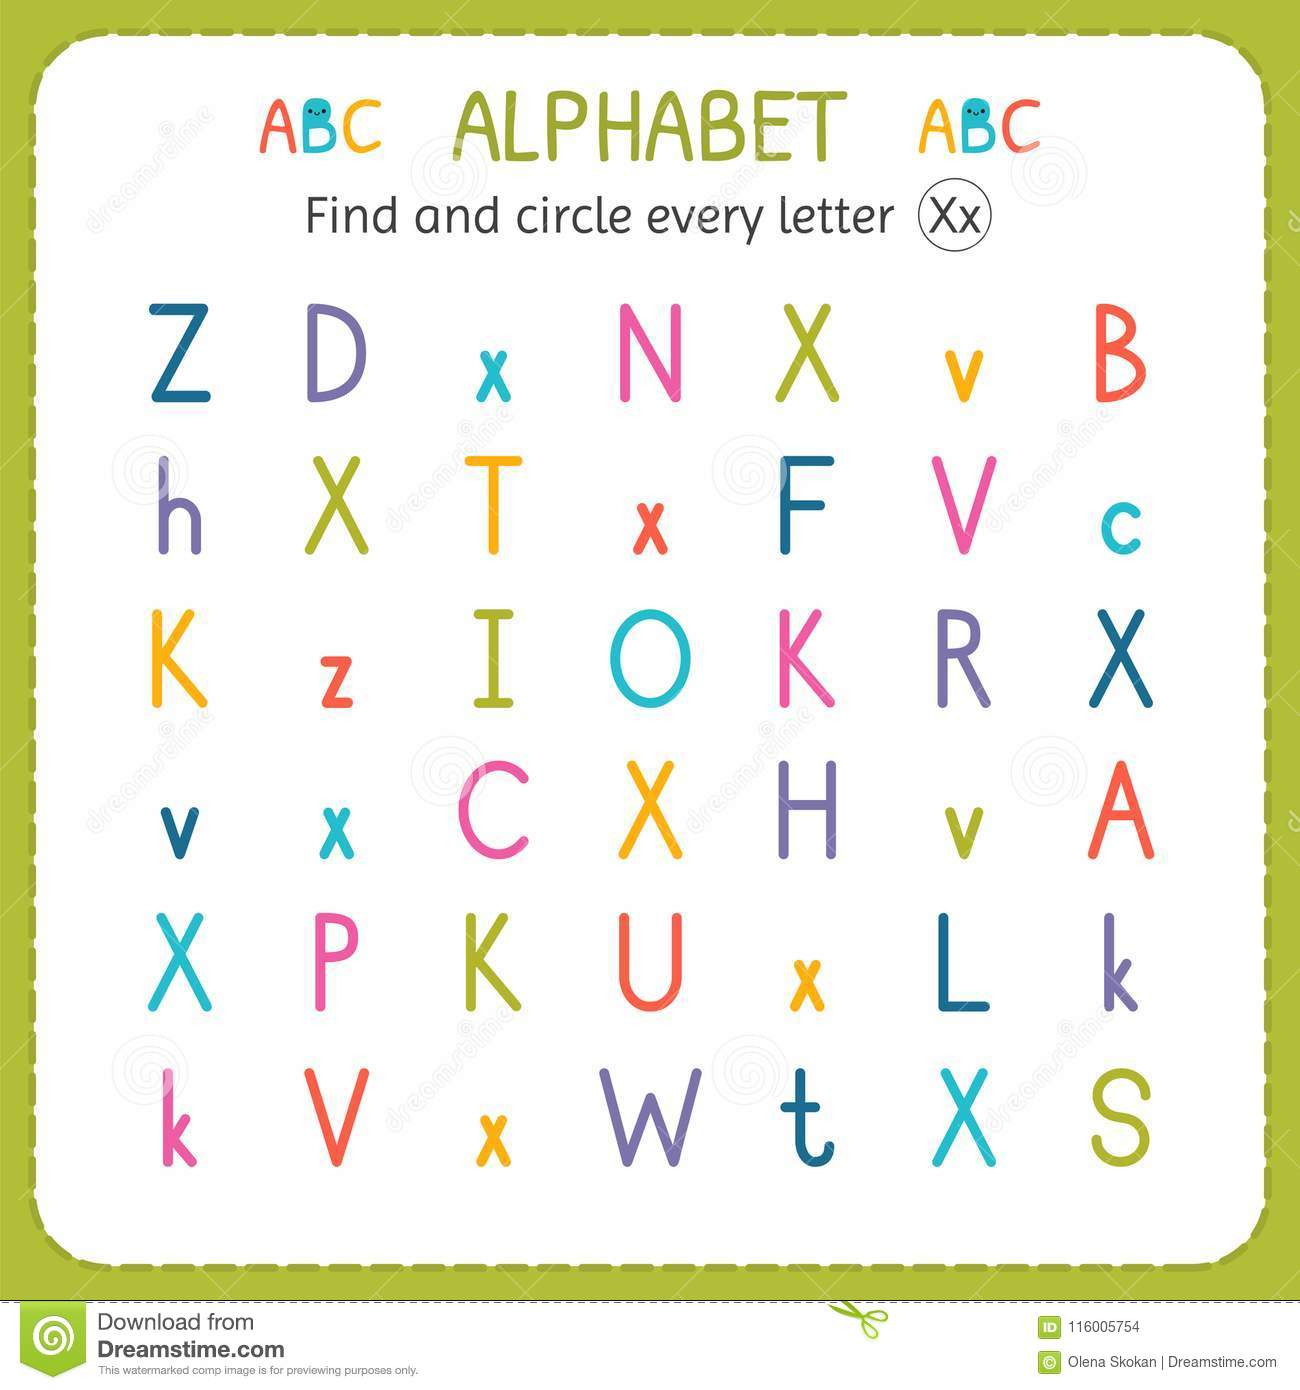 Letter X Worksheets for Preschool Find and Circle Every Letter X Worksheet for Kindergarten